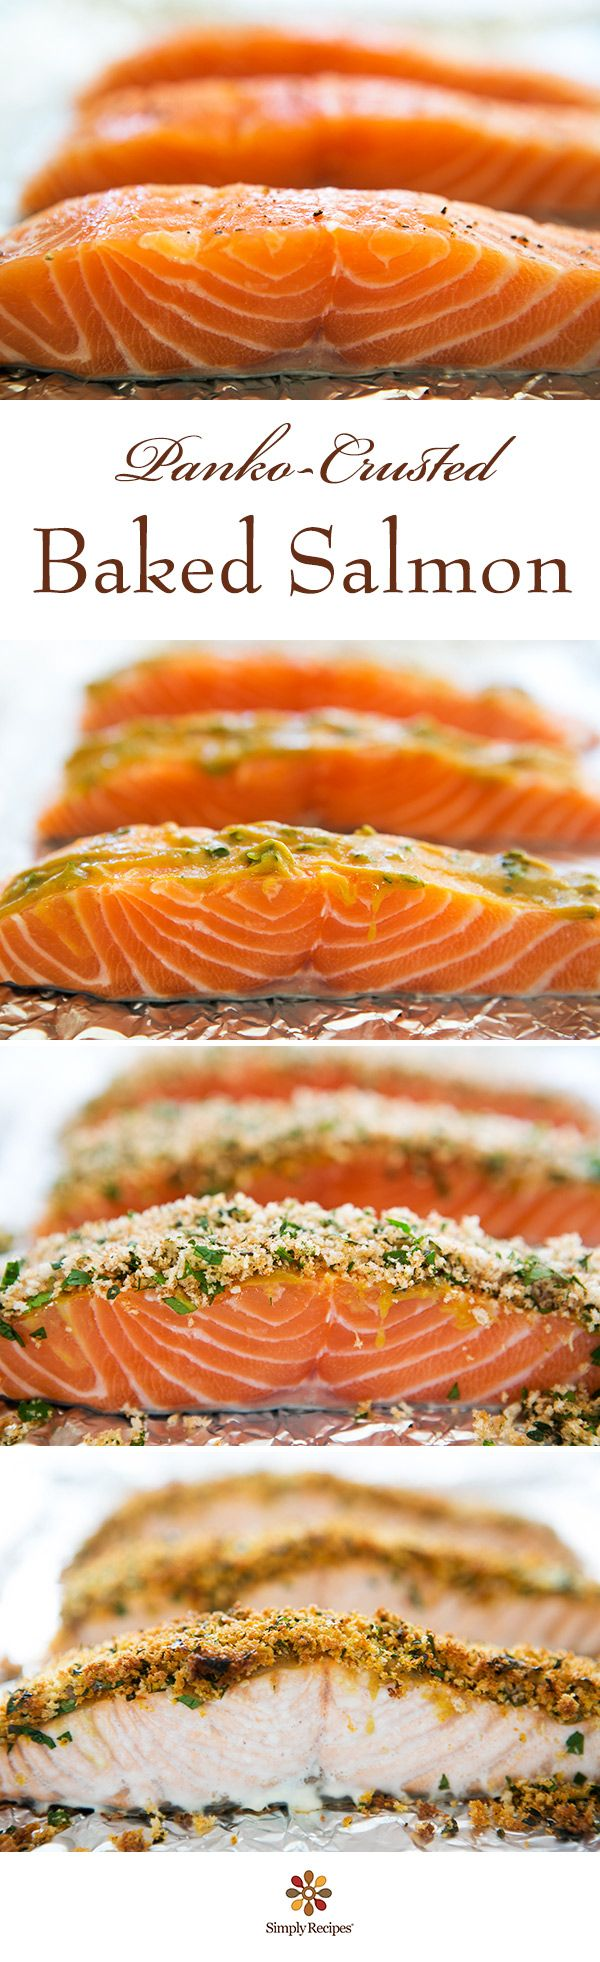 Panko-crusted baked salmon! Salmon steaks or fillets coated in honey mustard, breaded with Japanese panko crumbs, and baked to perfection. #easy #dinner On SimplyRecipes.com